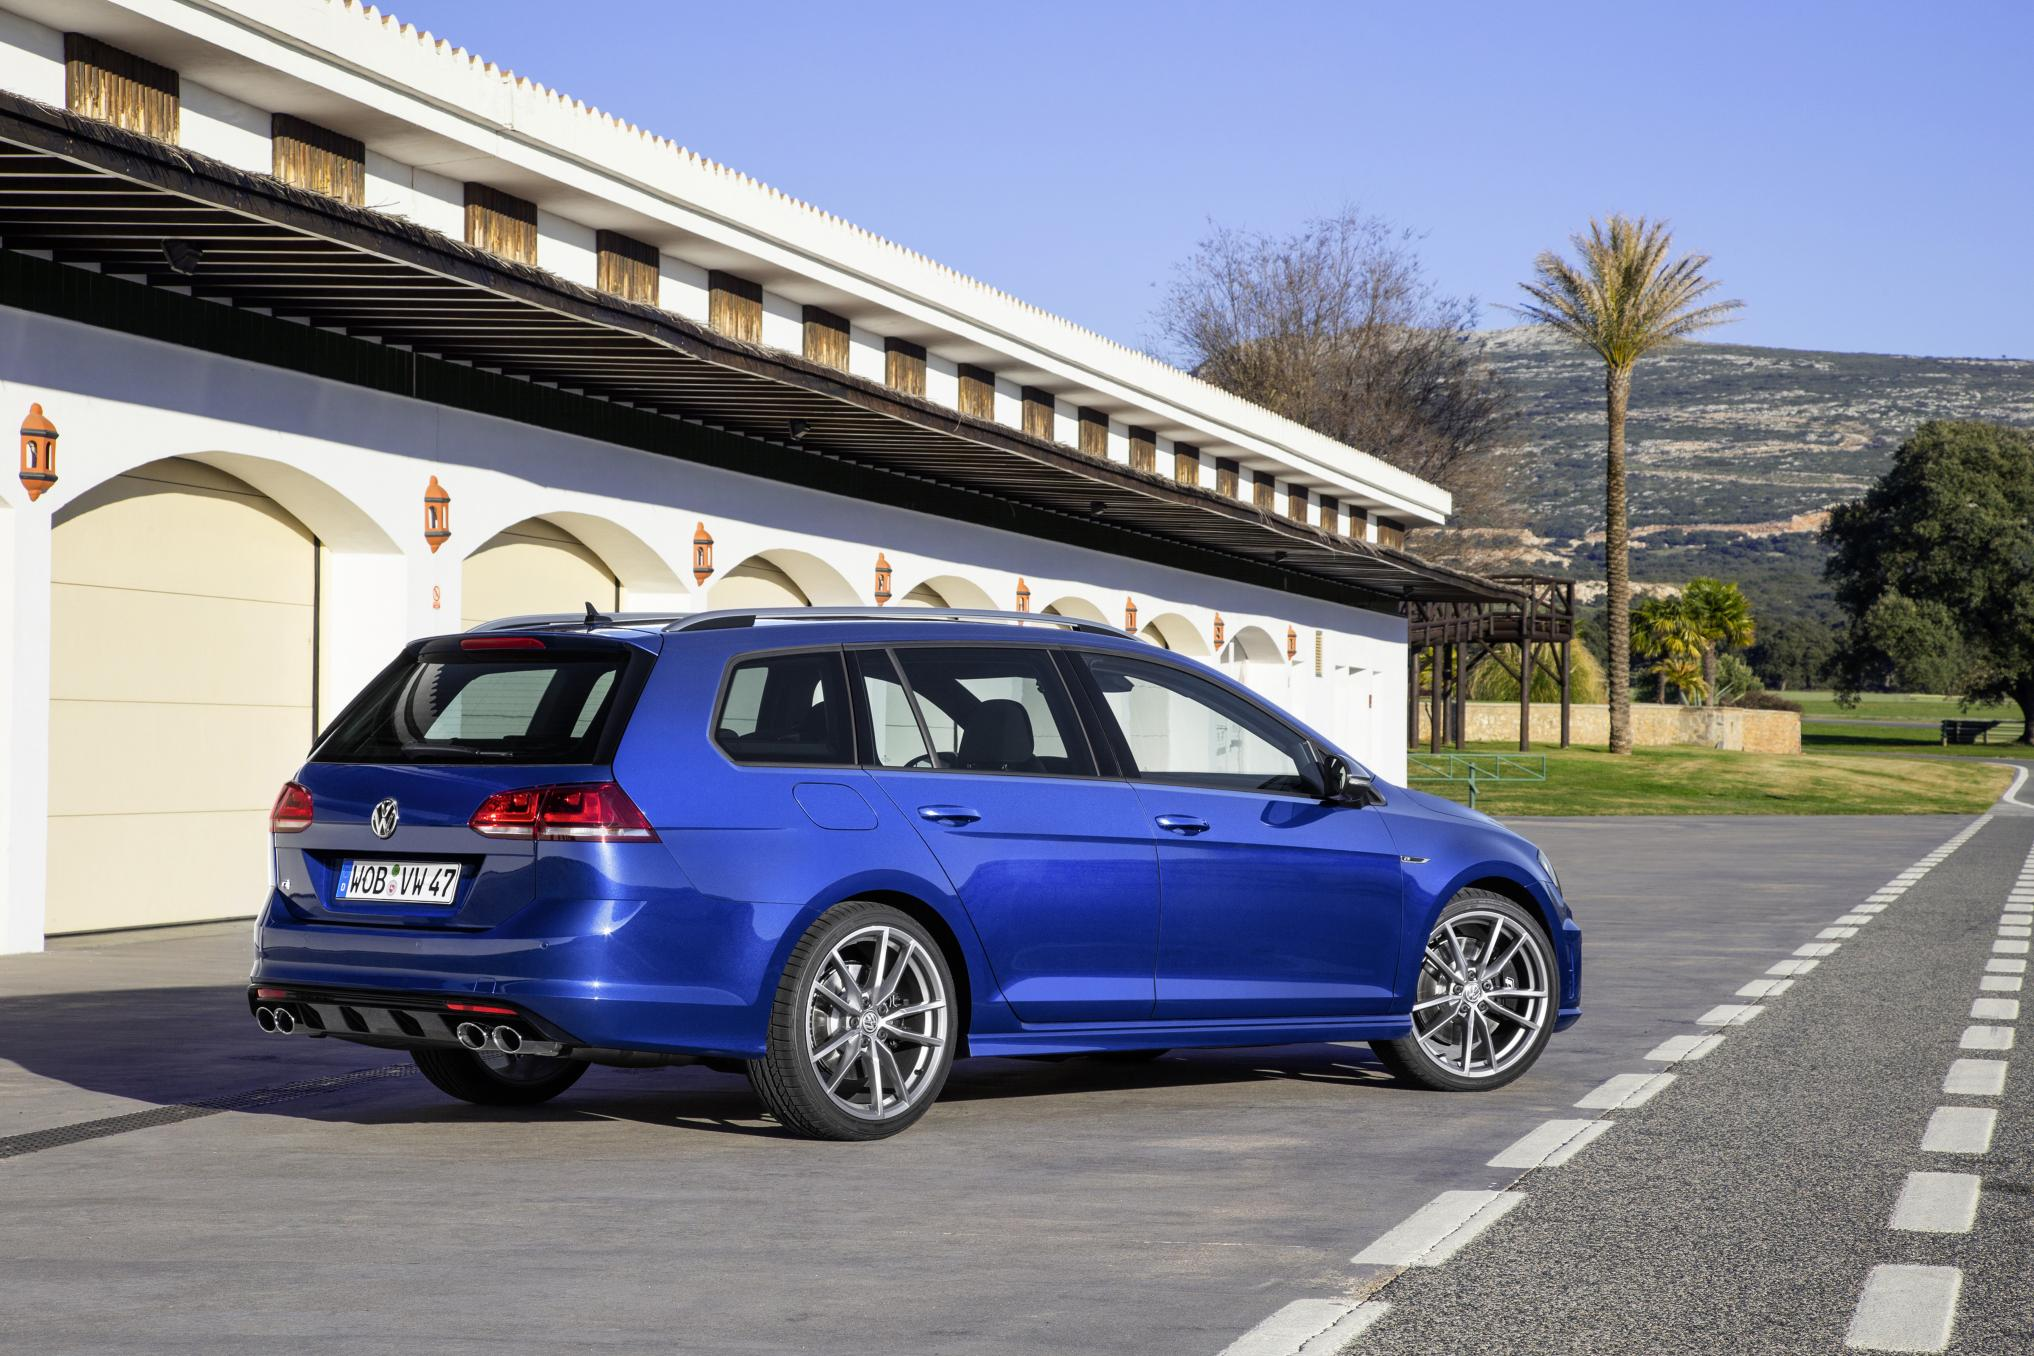 Volkswagen Golf R Estate Review Prices Specs And 0 60 Time Evo